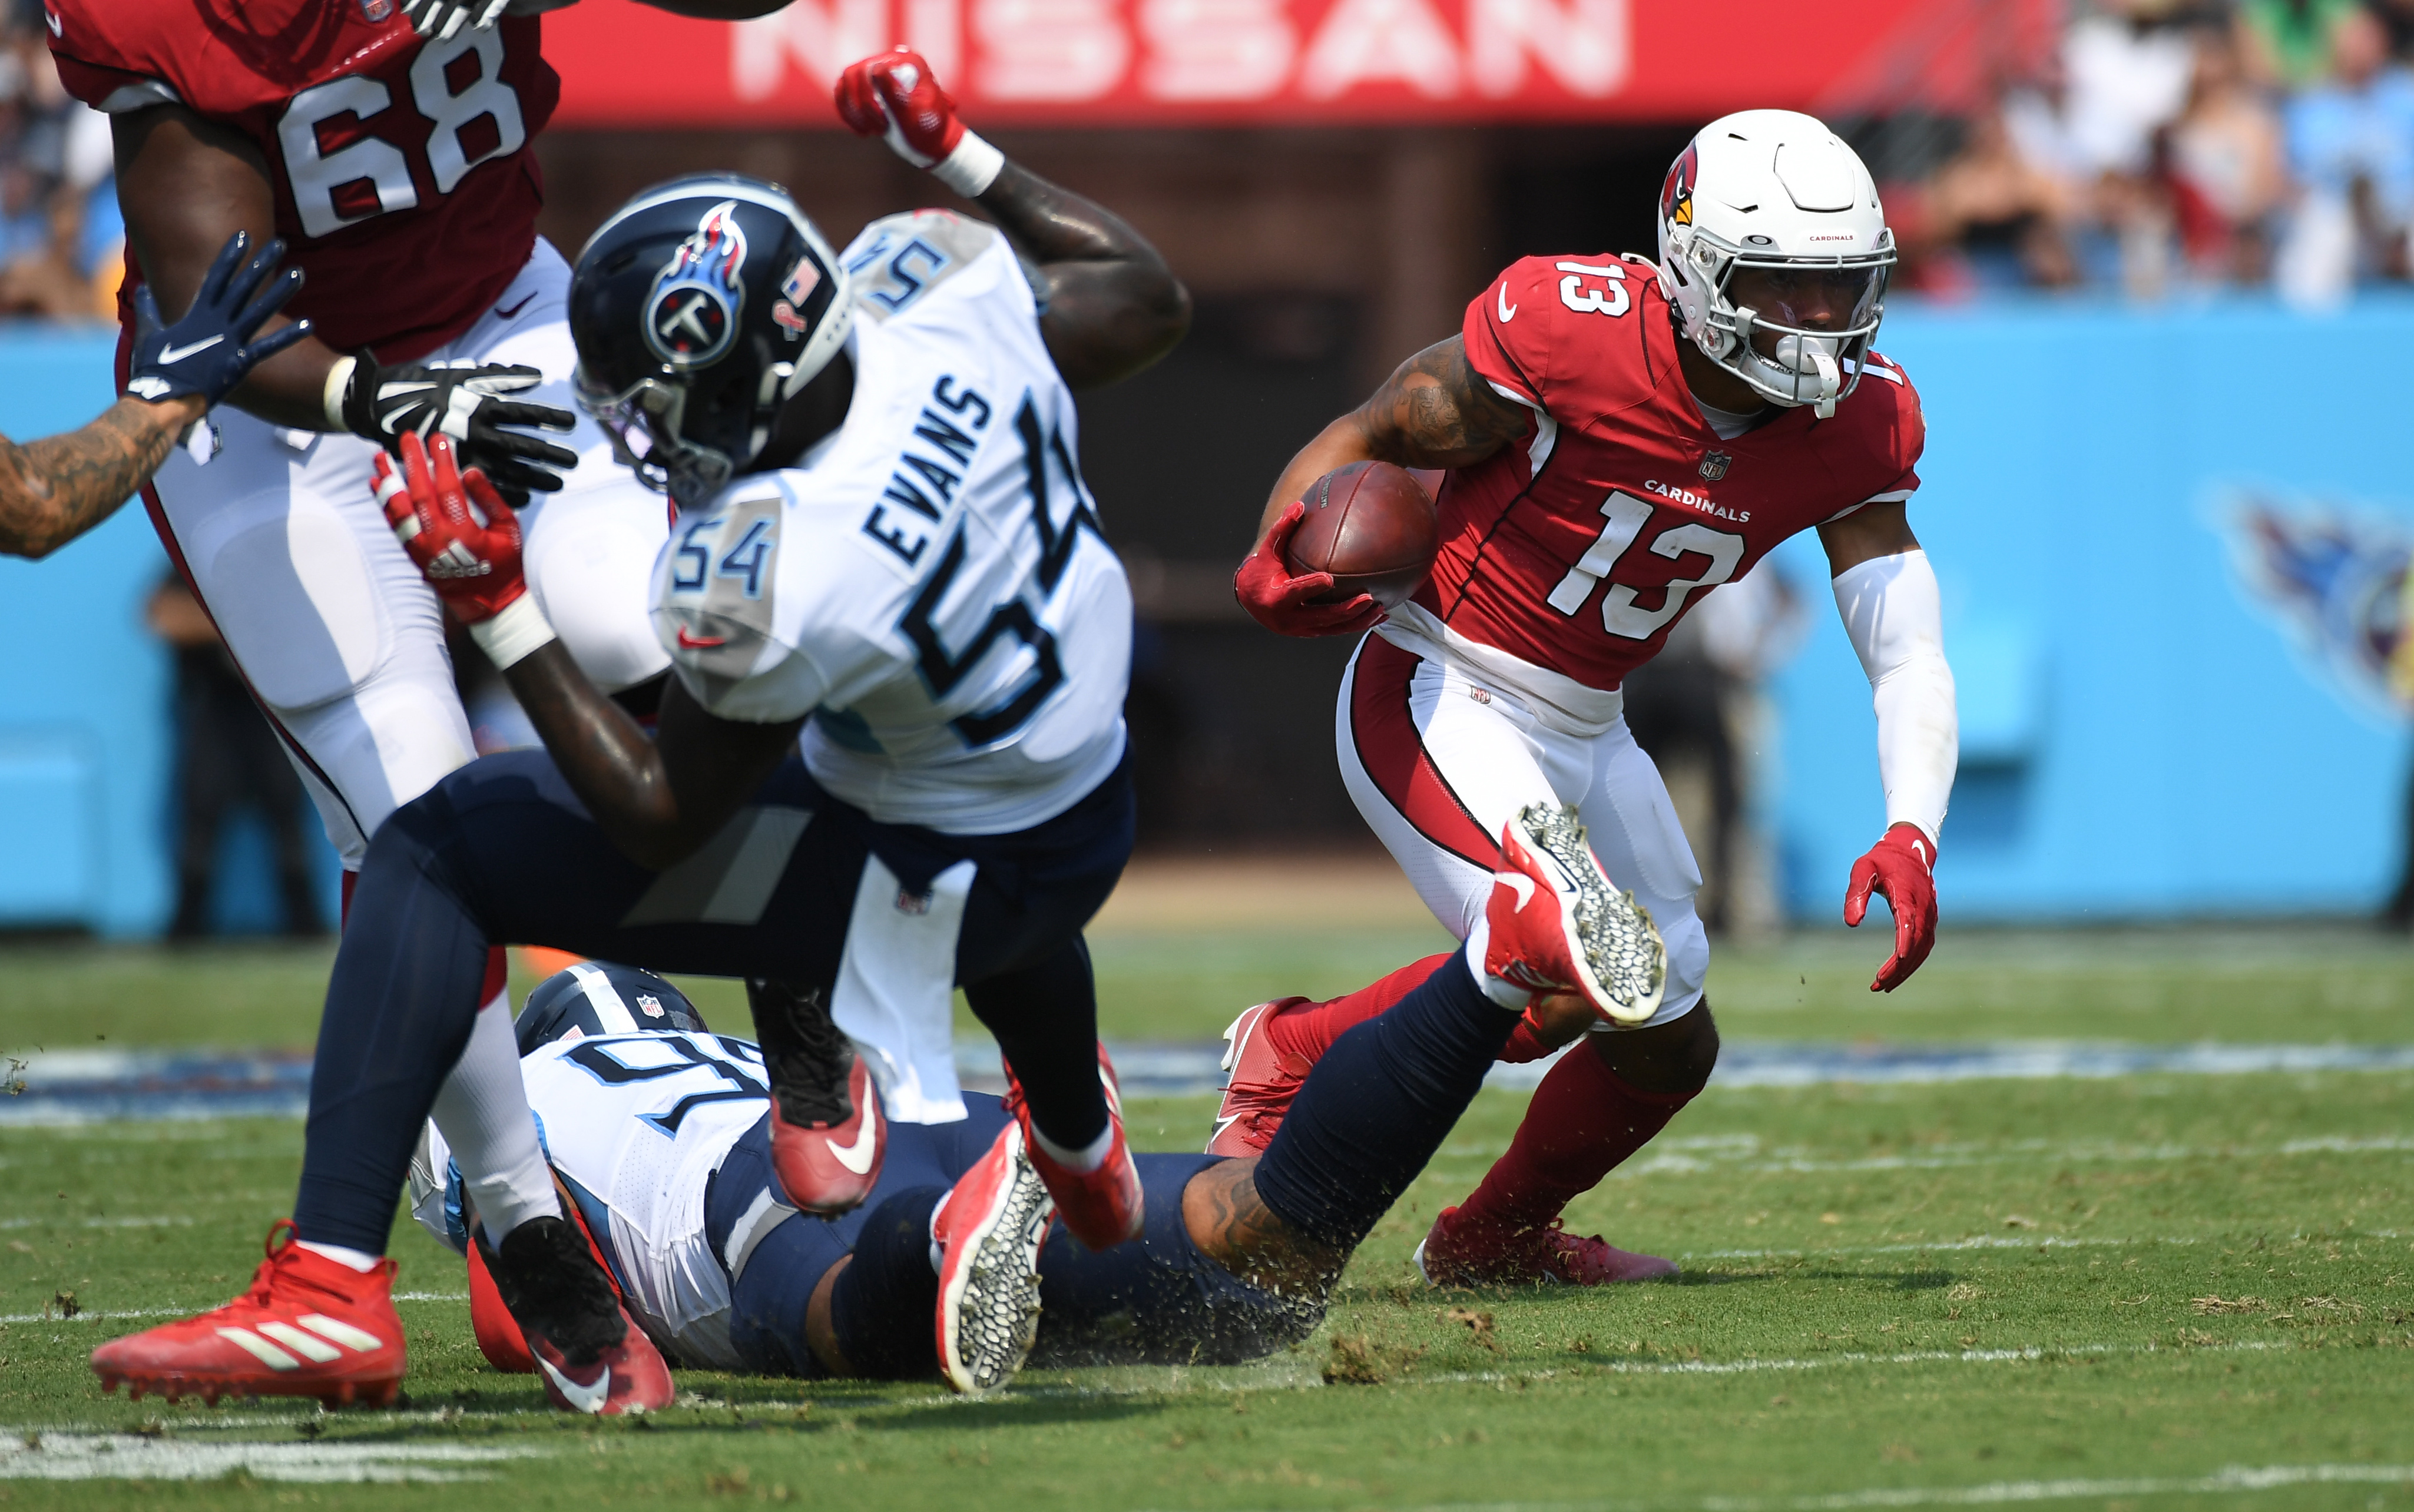 Arizona Cardinals wide receiver Christian Kirk (13) runs after a reception during the first half against the Tennessee Titans at Nissan Stadium.